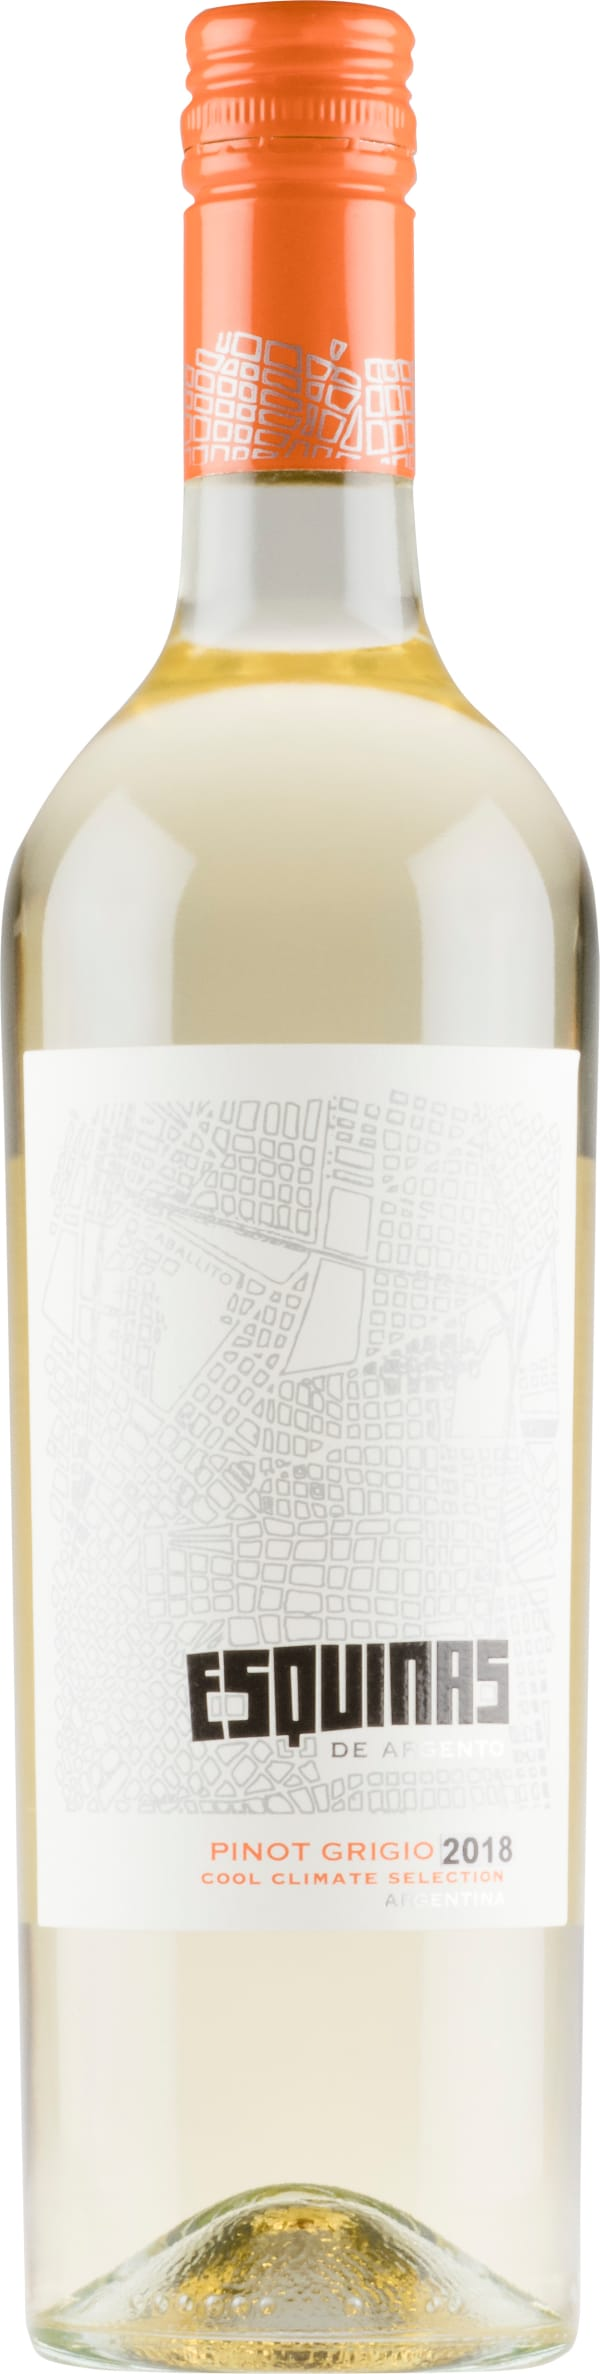 Esquinas Pinot Grigio Cool Climate Selection 2018